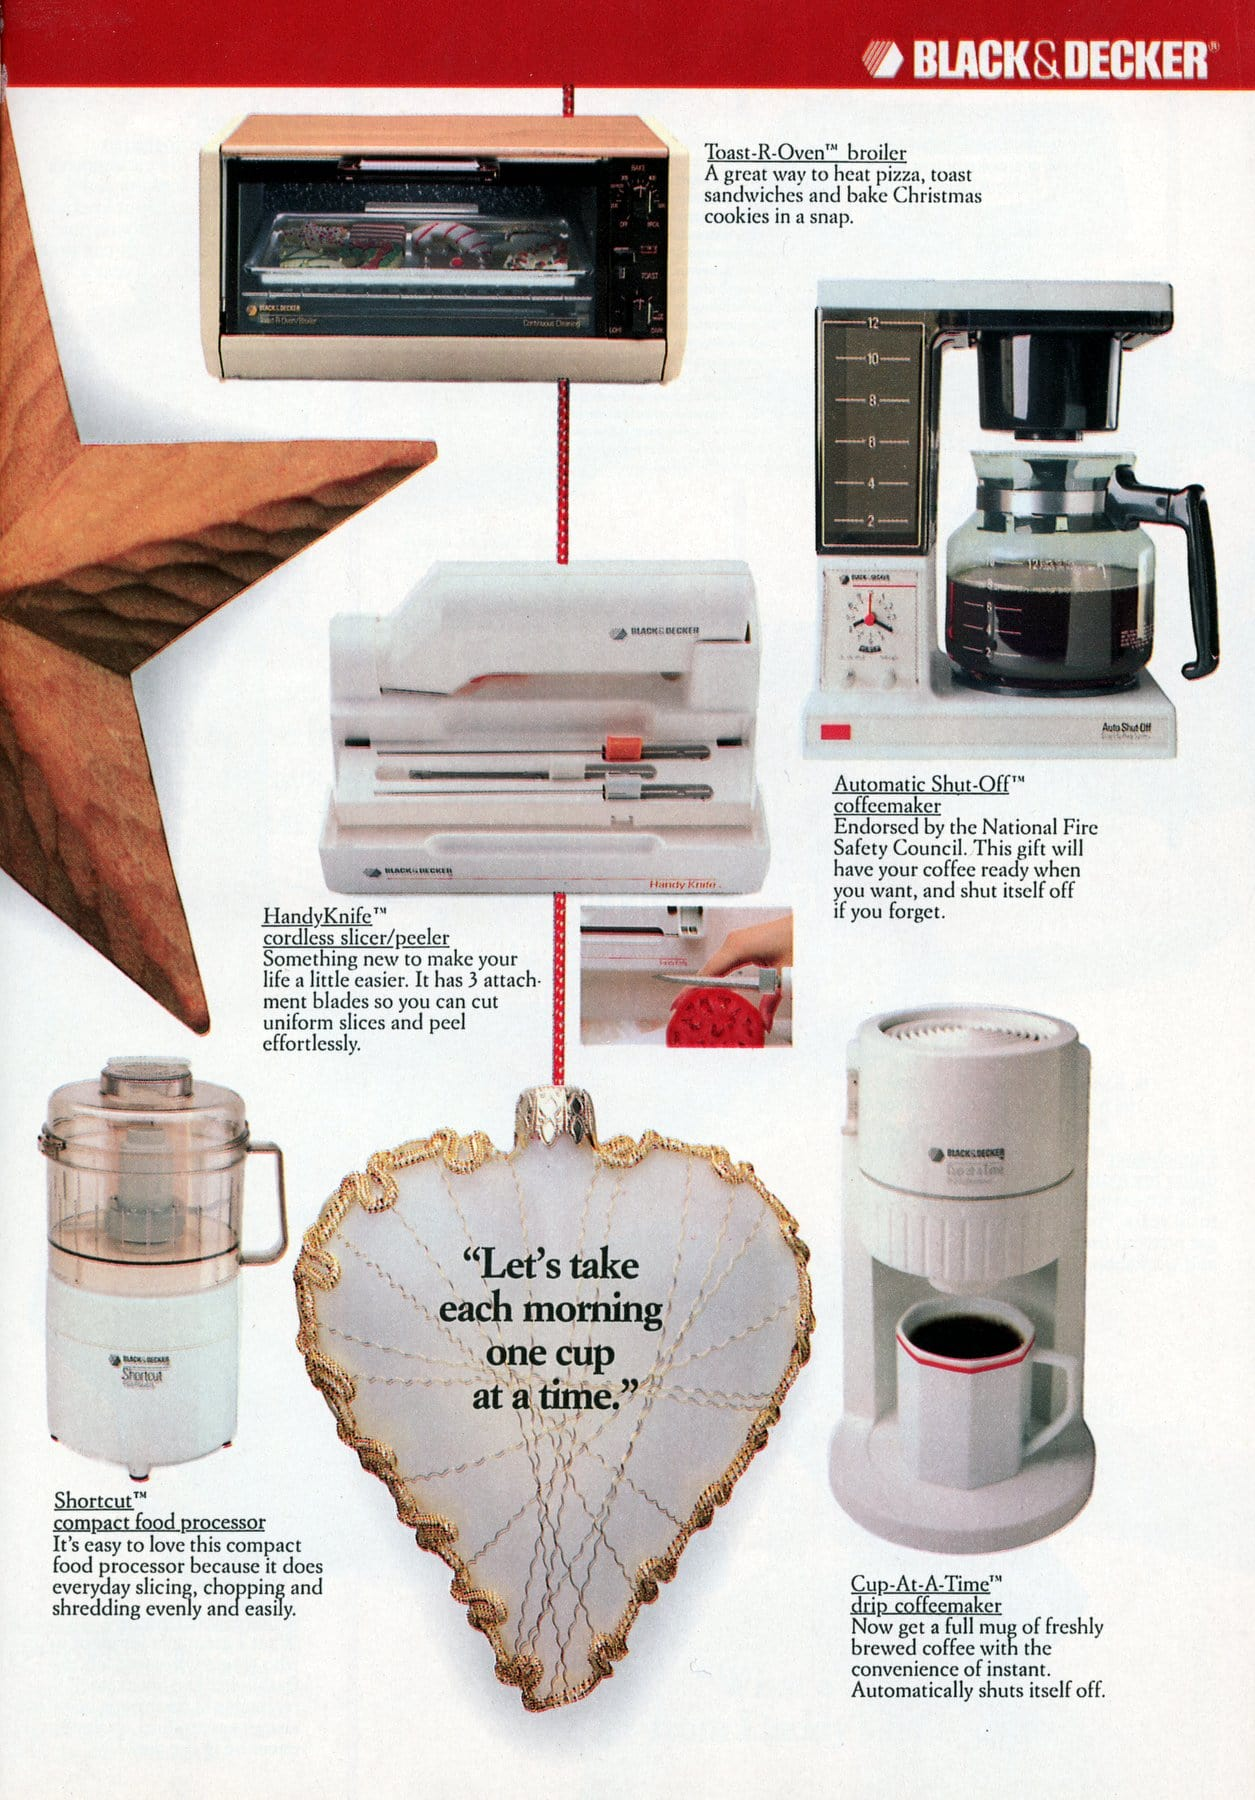 Retro Black and Decker electronics and appliances from 1987 (1)